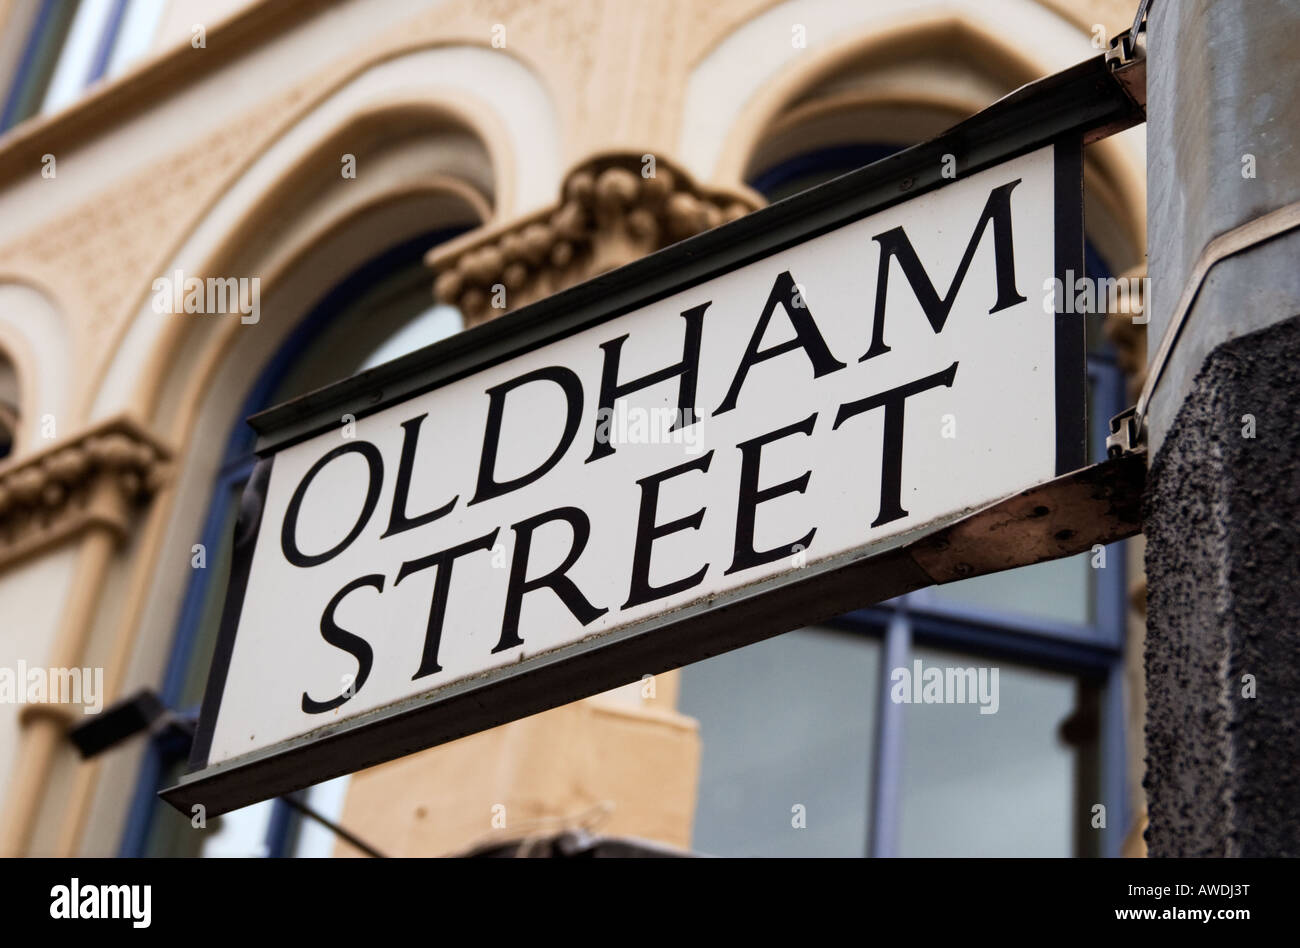 Sign For Oldham Street, Manchester - Stock Image